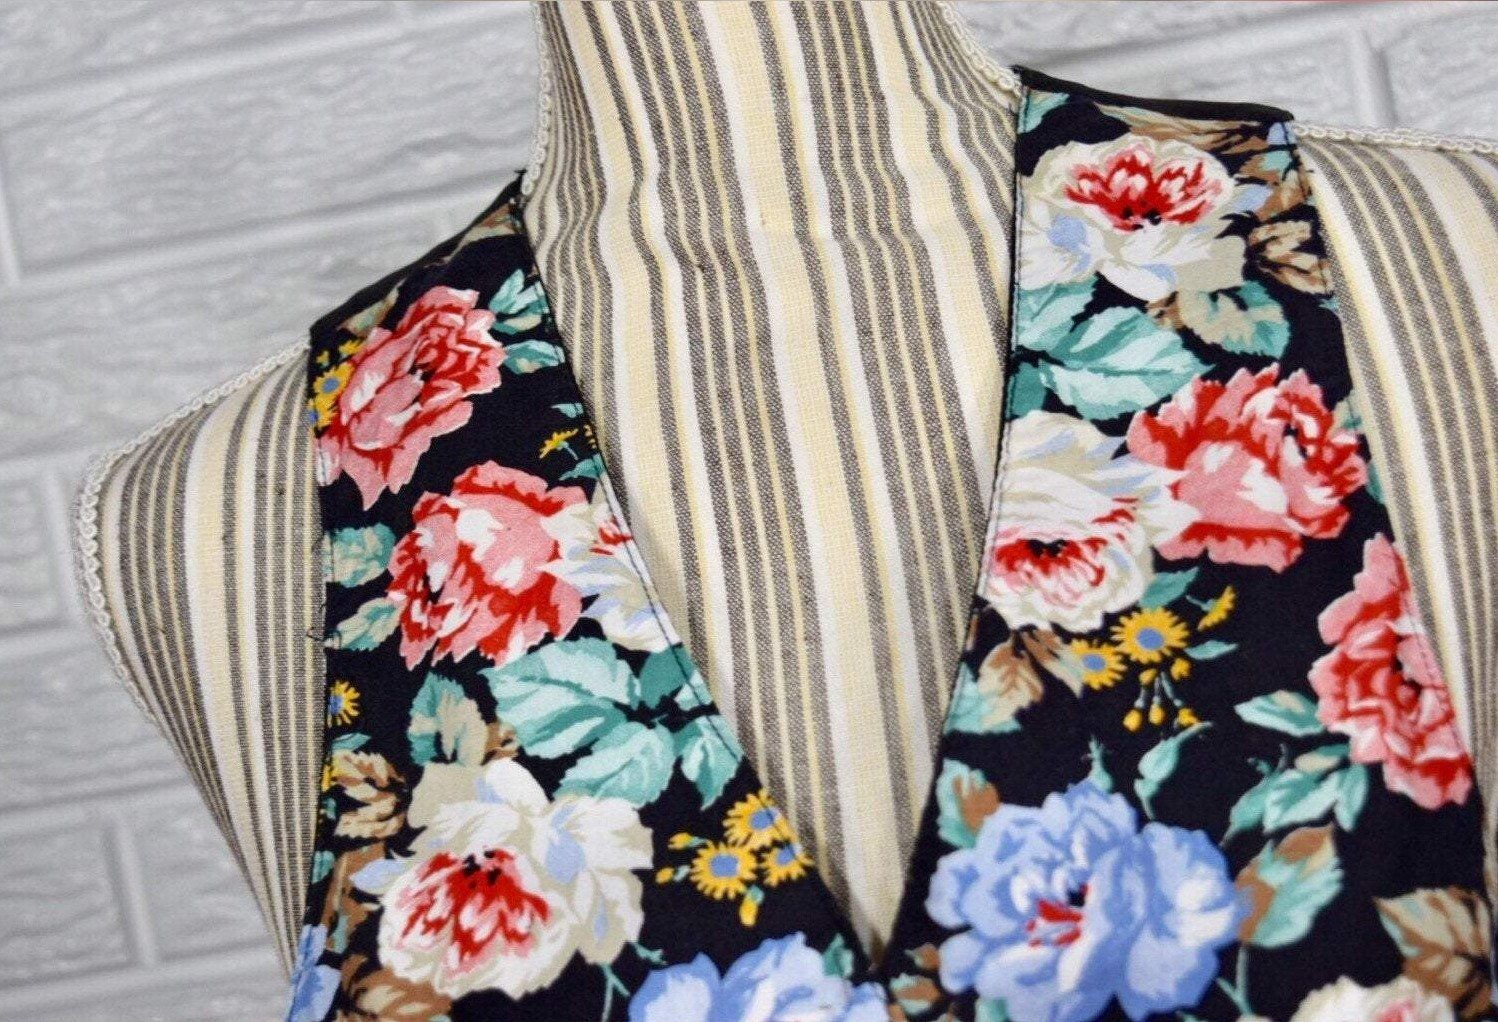 90 S Black With Large Floral Print Vest By Best American Clothing Co In 2021 Clothing Co American Apparel Good American